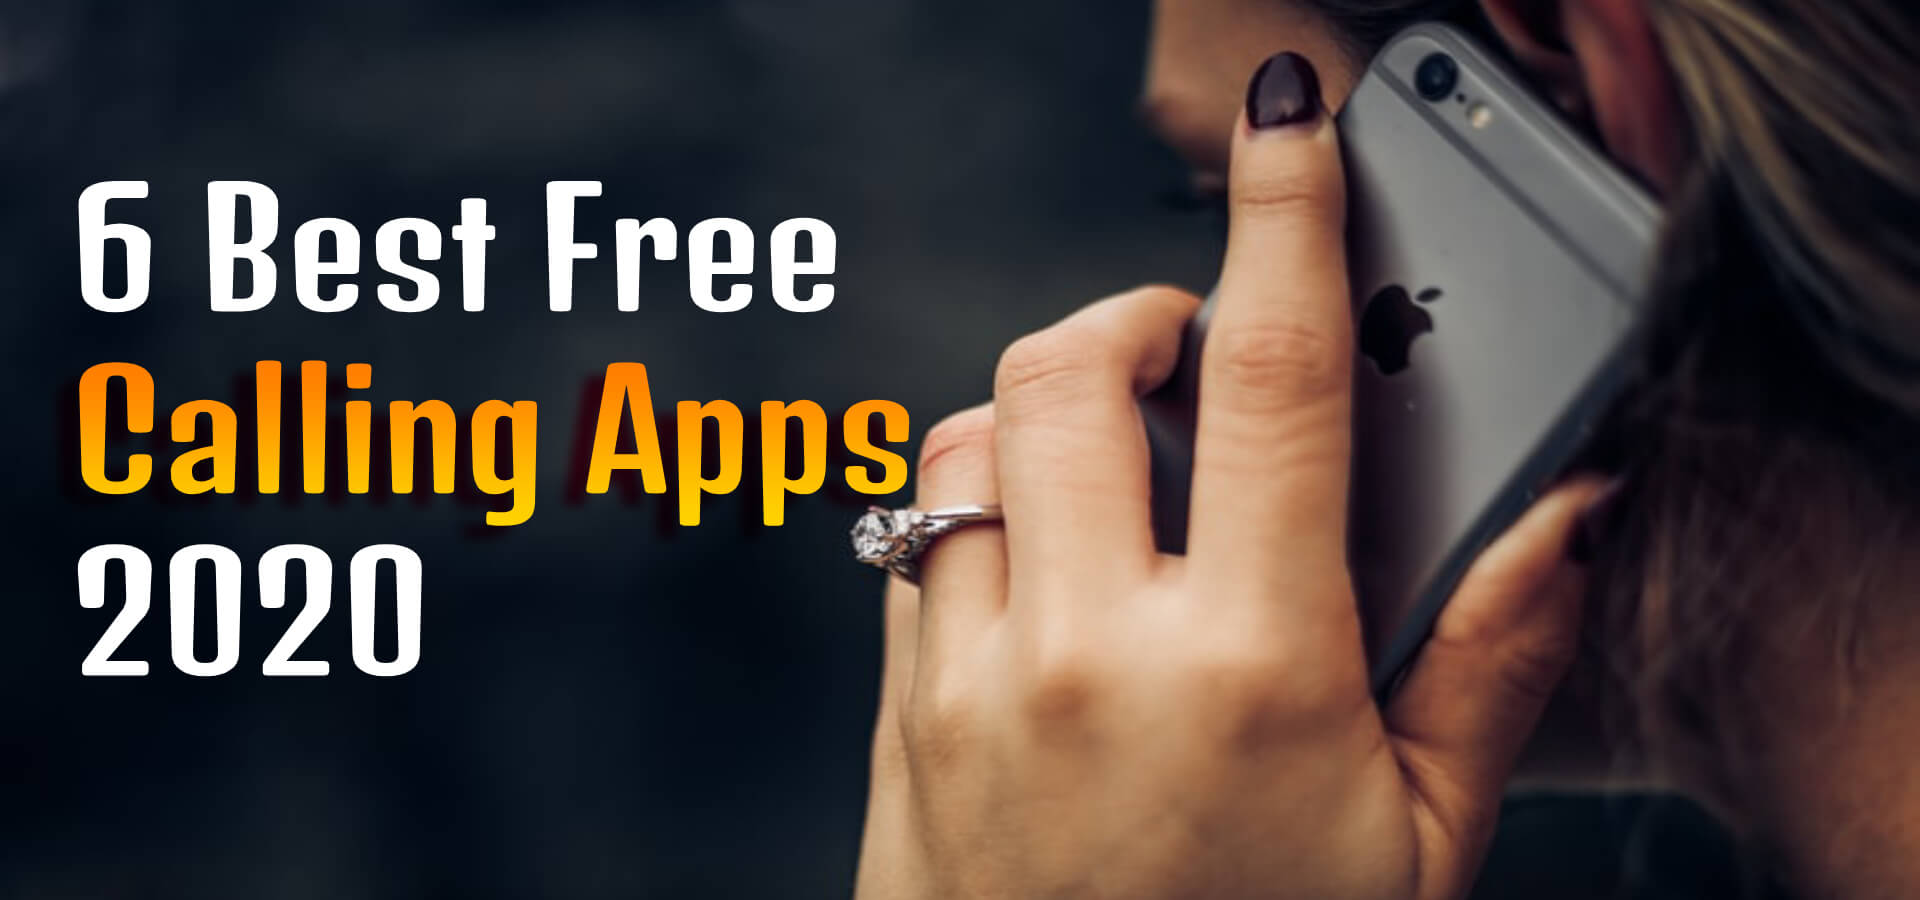 best-free-calling-apps-in-india-suggestion-buddy.jpg